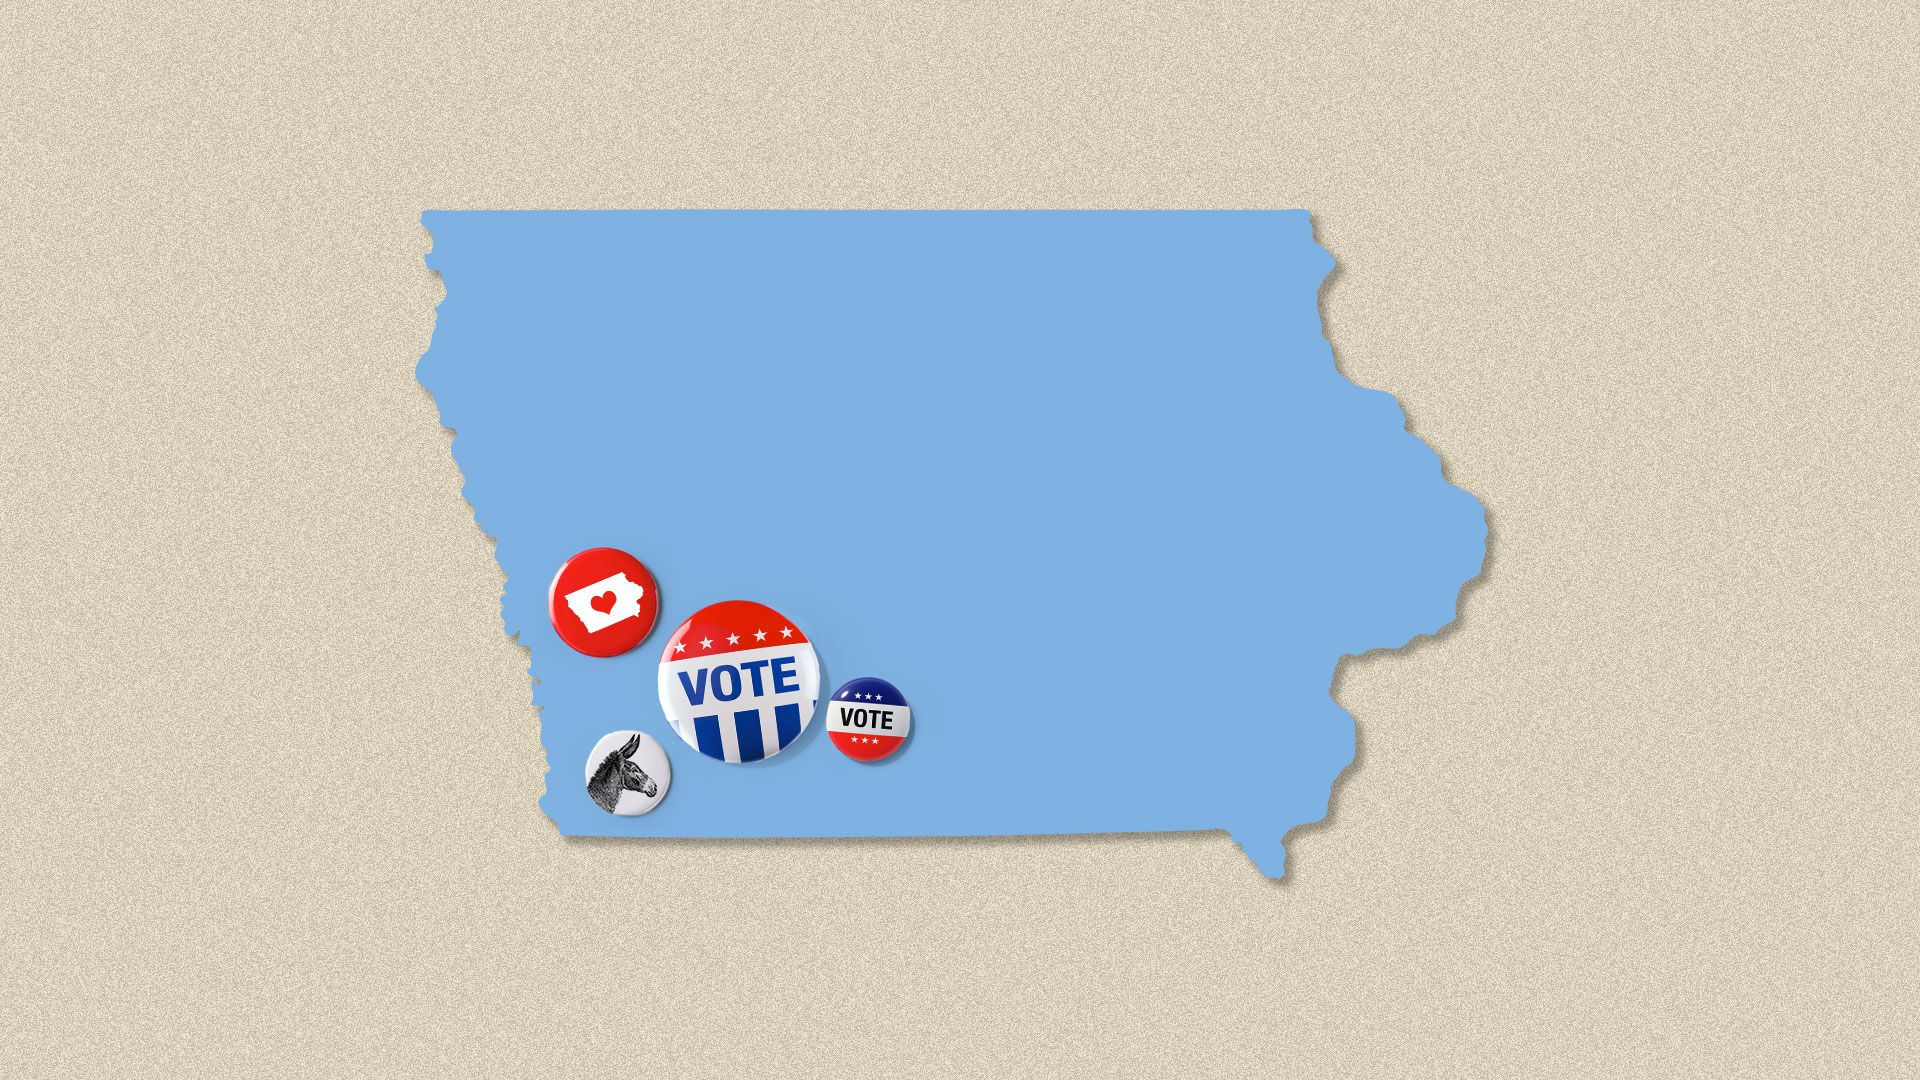 Illustration of the state of Iowa wearing various voting buttons.